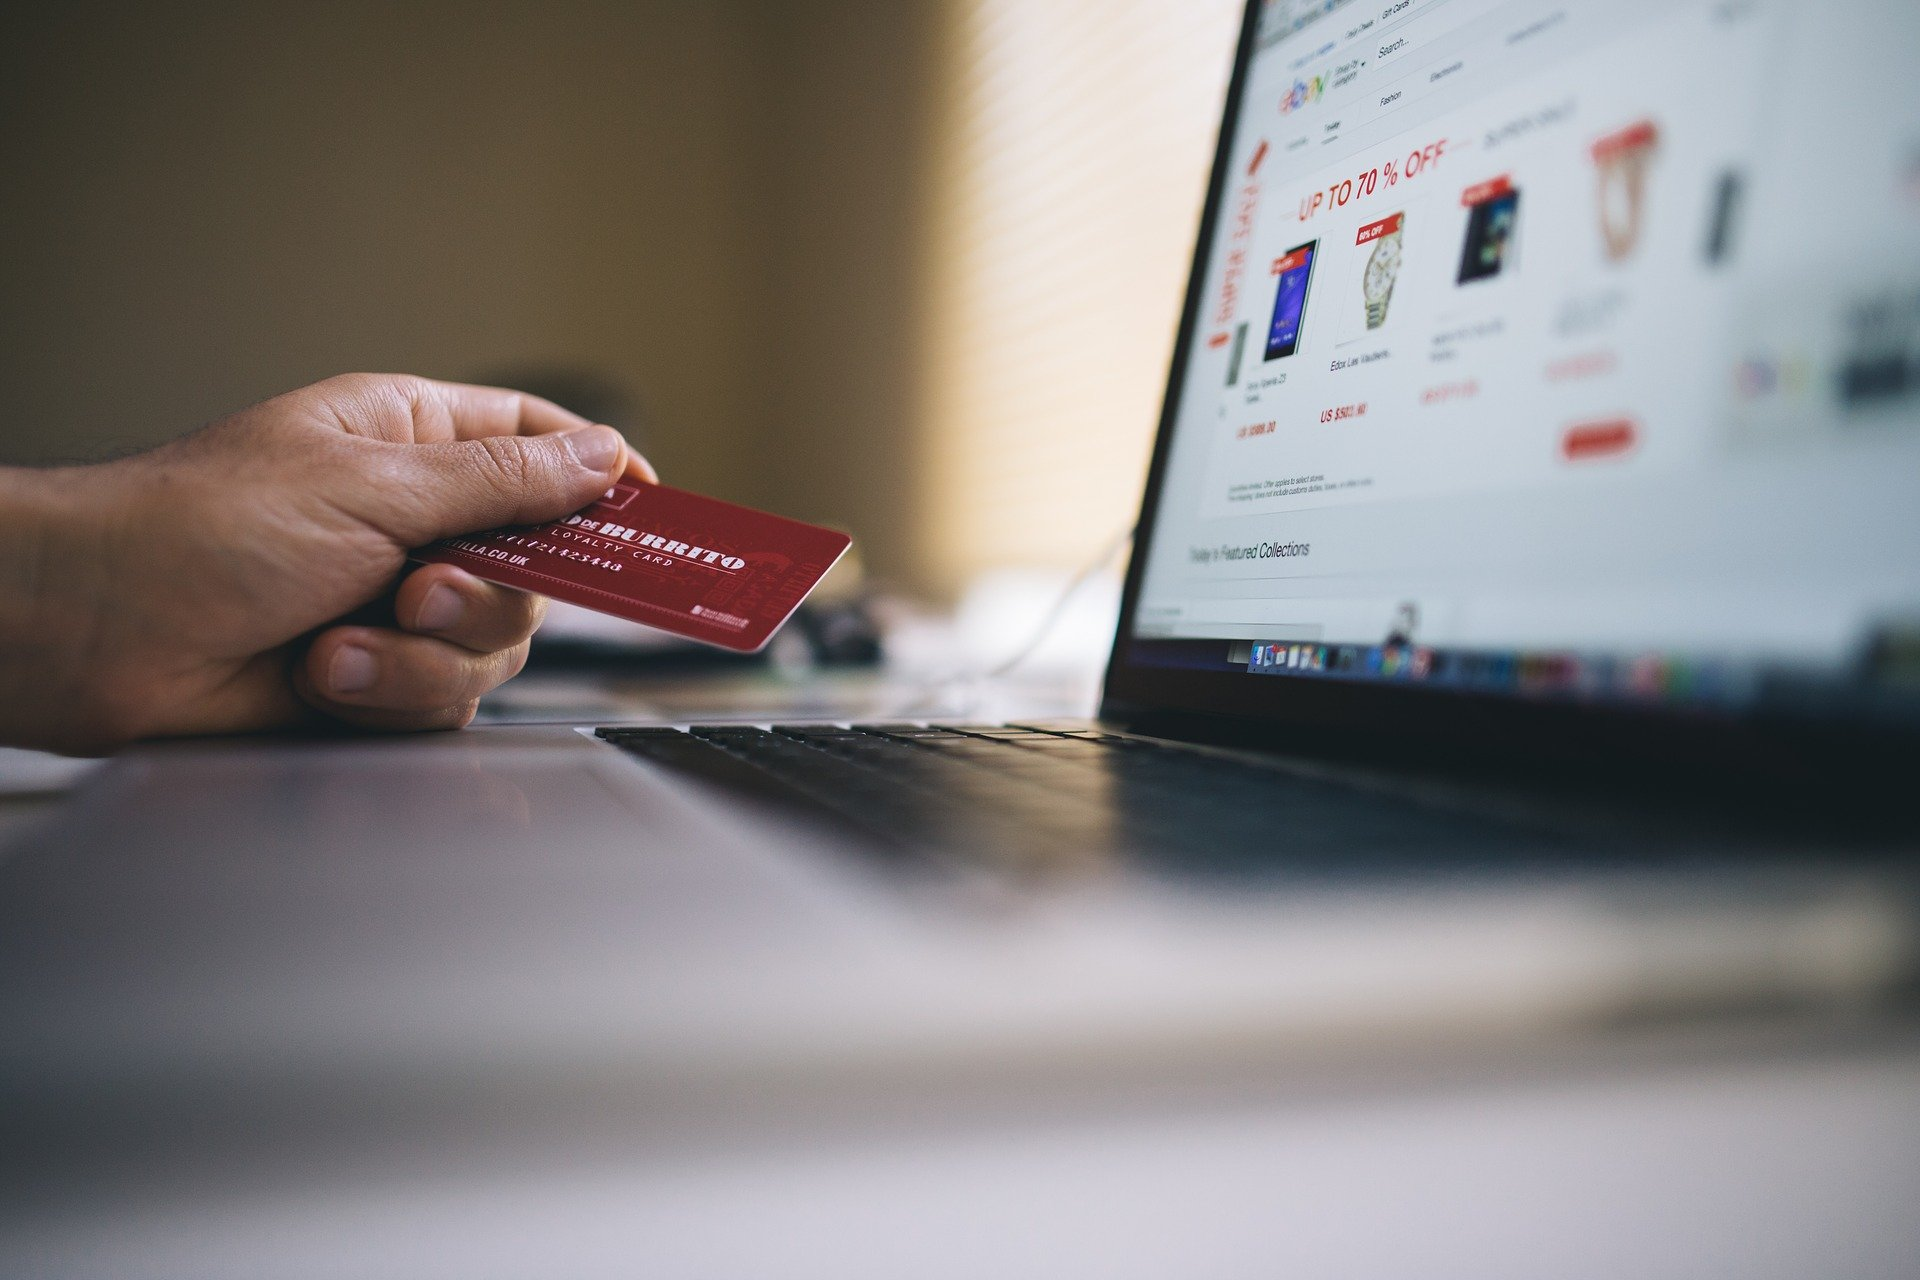 7 Critical Skills For Running a Successful E-Commerce Business